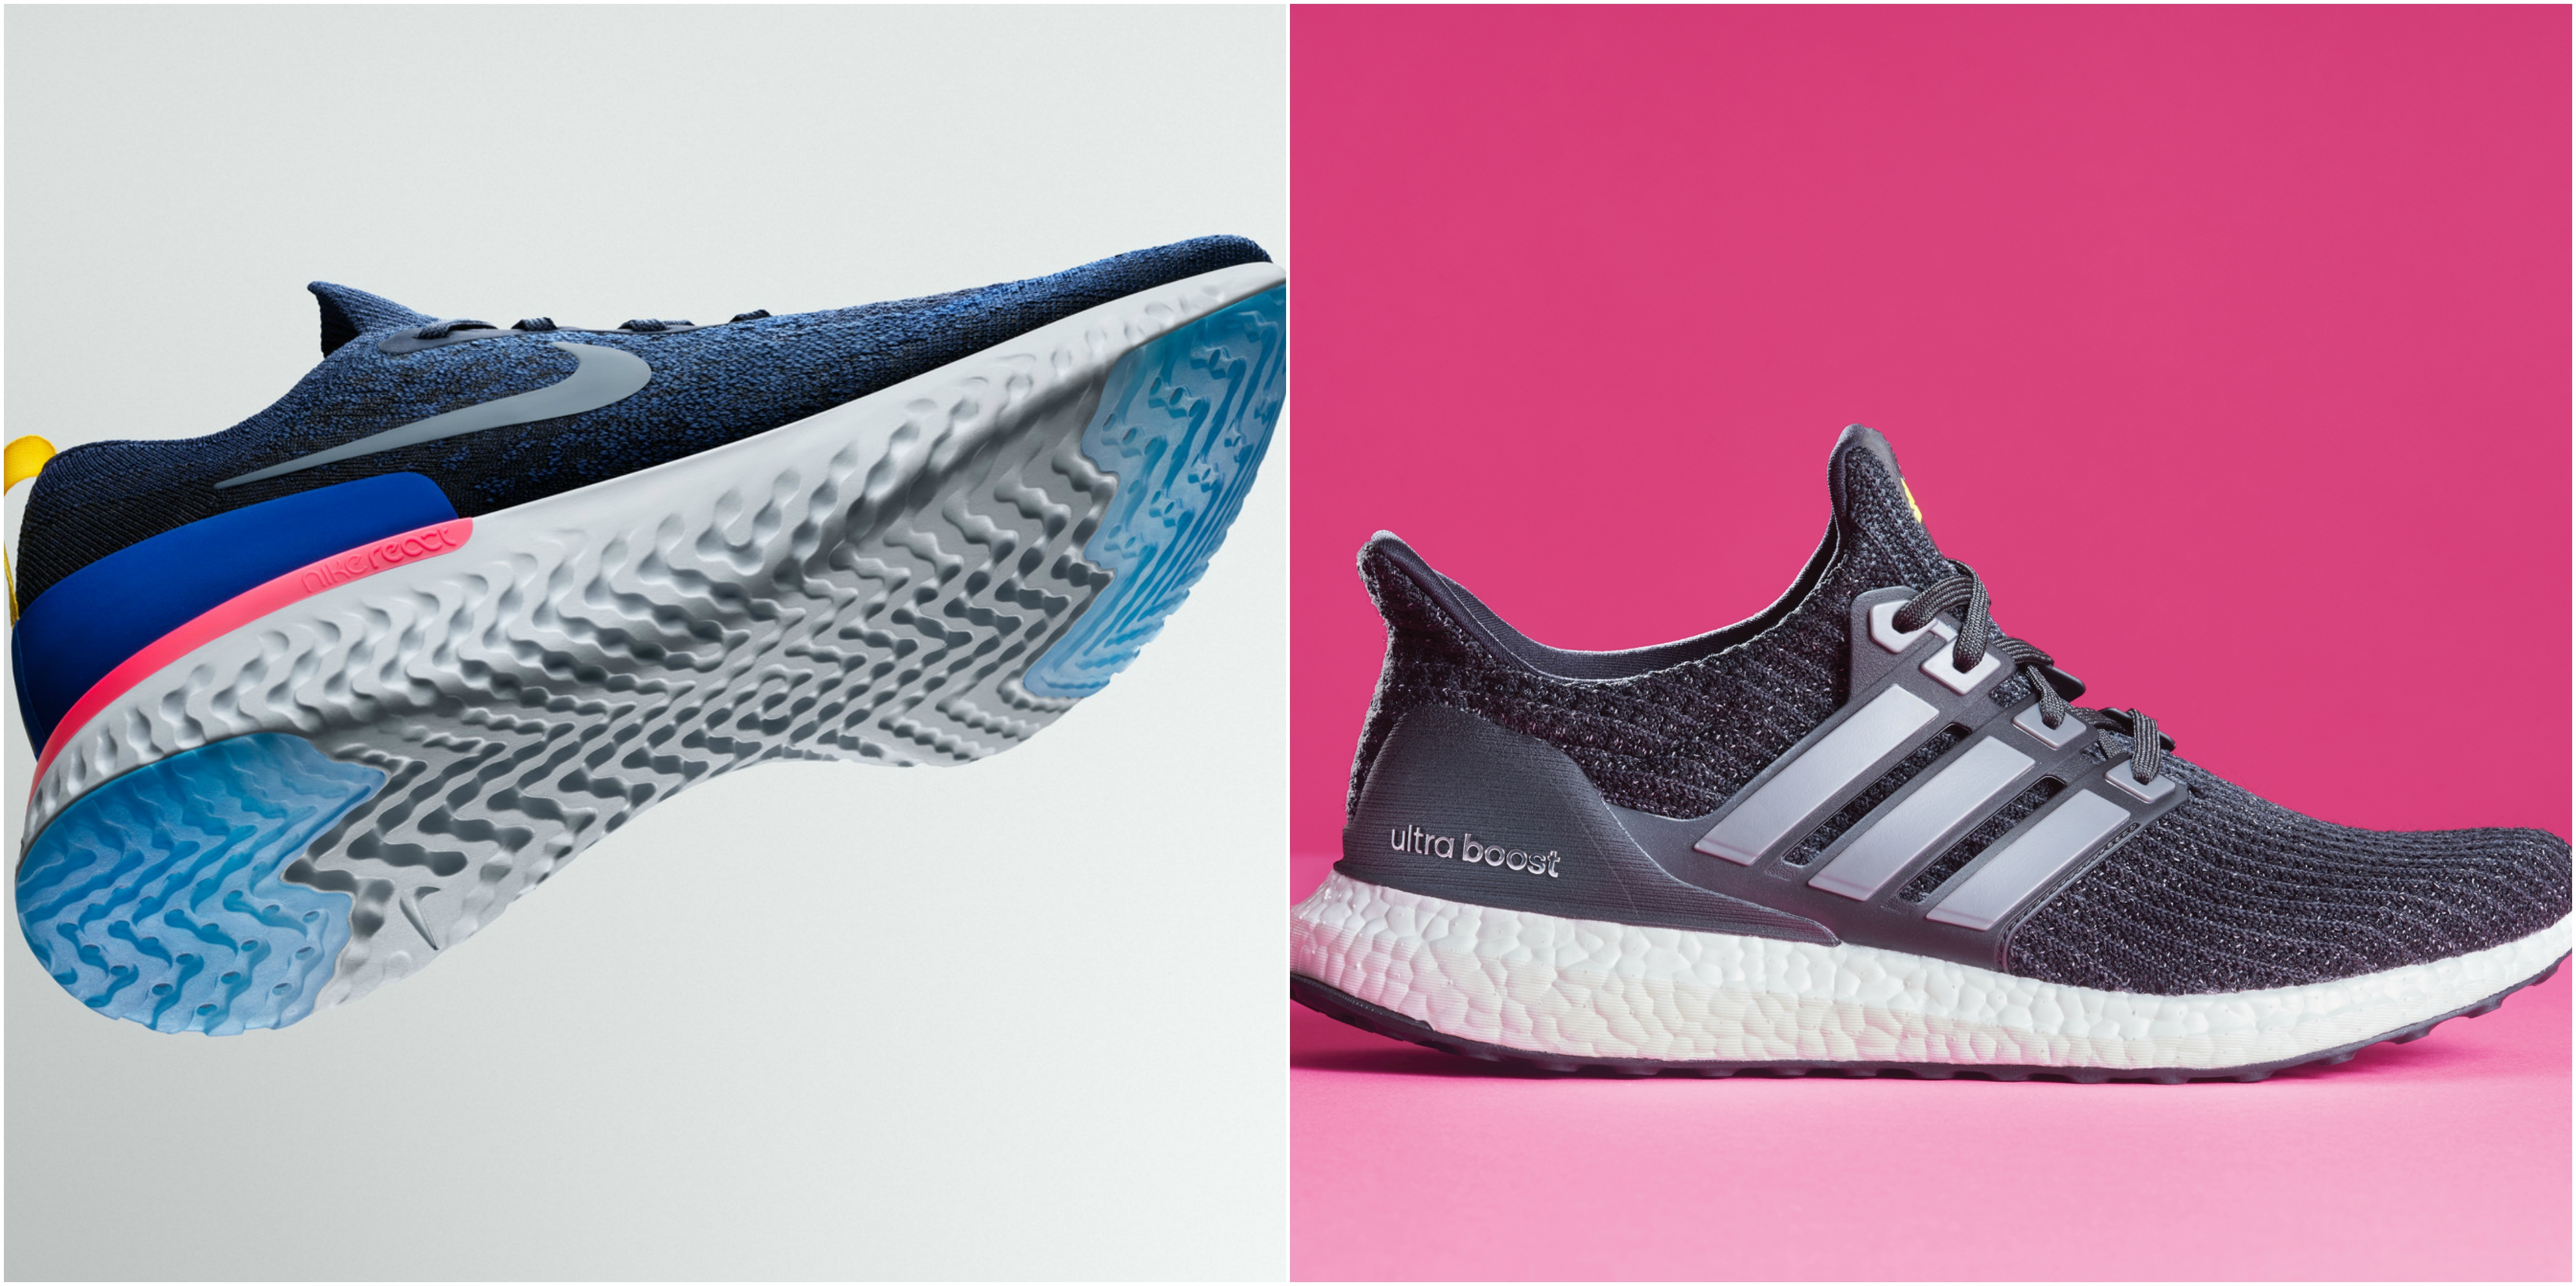 b879d508f4b46 Nike Epic React v. Adidas Ultraboost  which is better